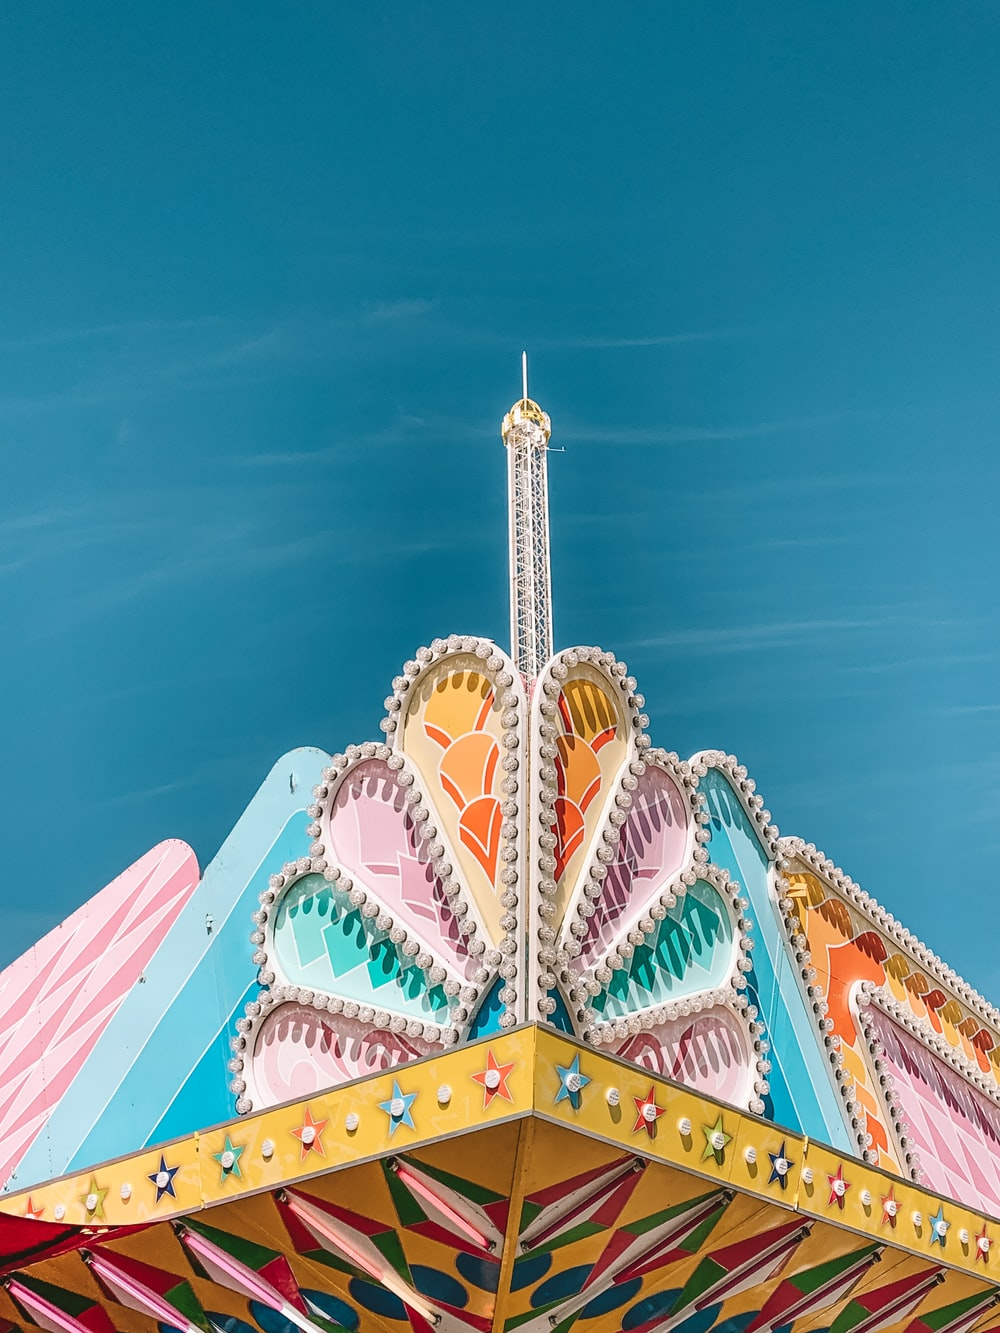 low-angle photography of multicolored building structure under blue sky